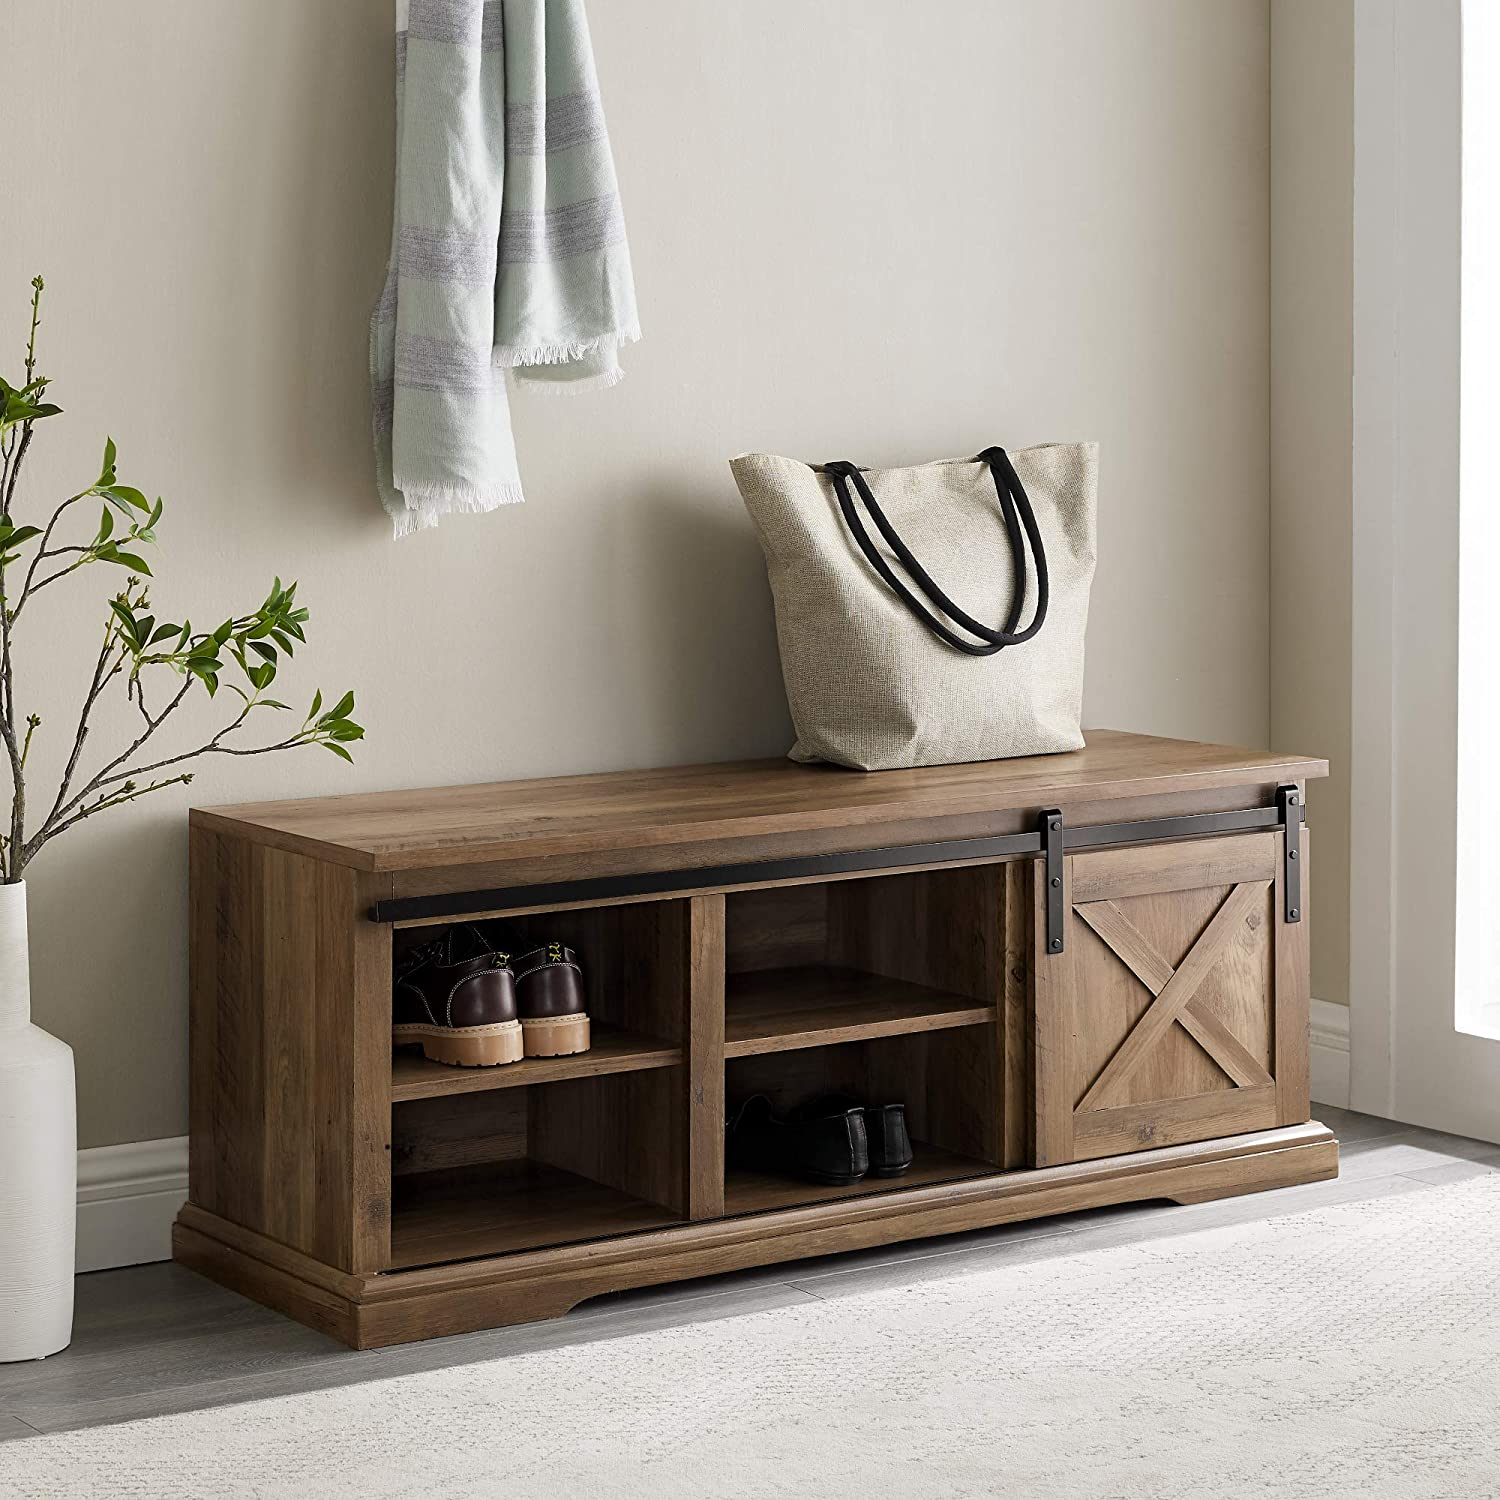 storage for small spaces entryway bench with storage